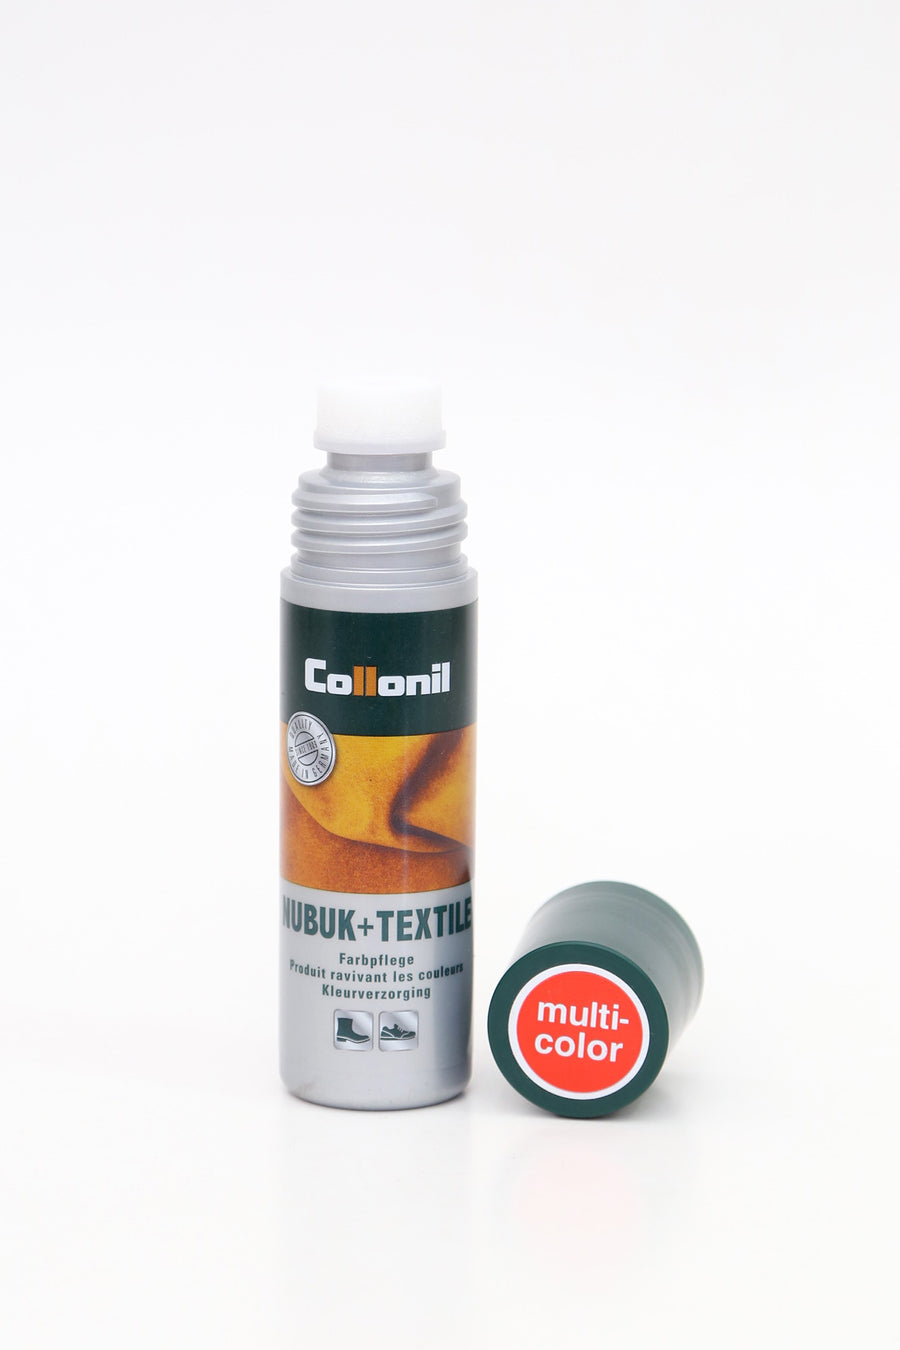 Collonil NUBUK + TEXTILE MULTICOLOR 100ml